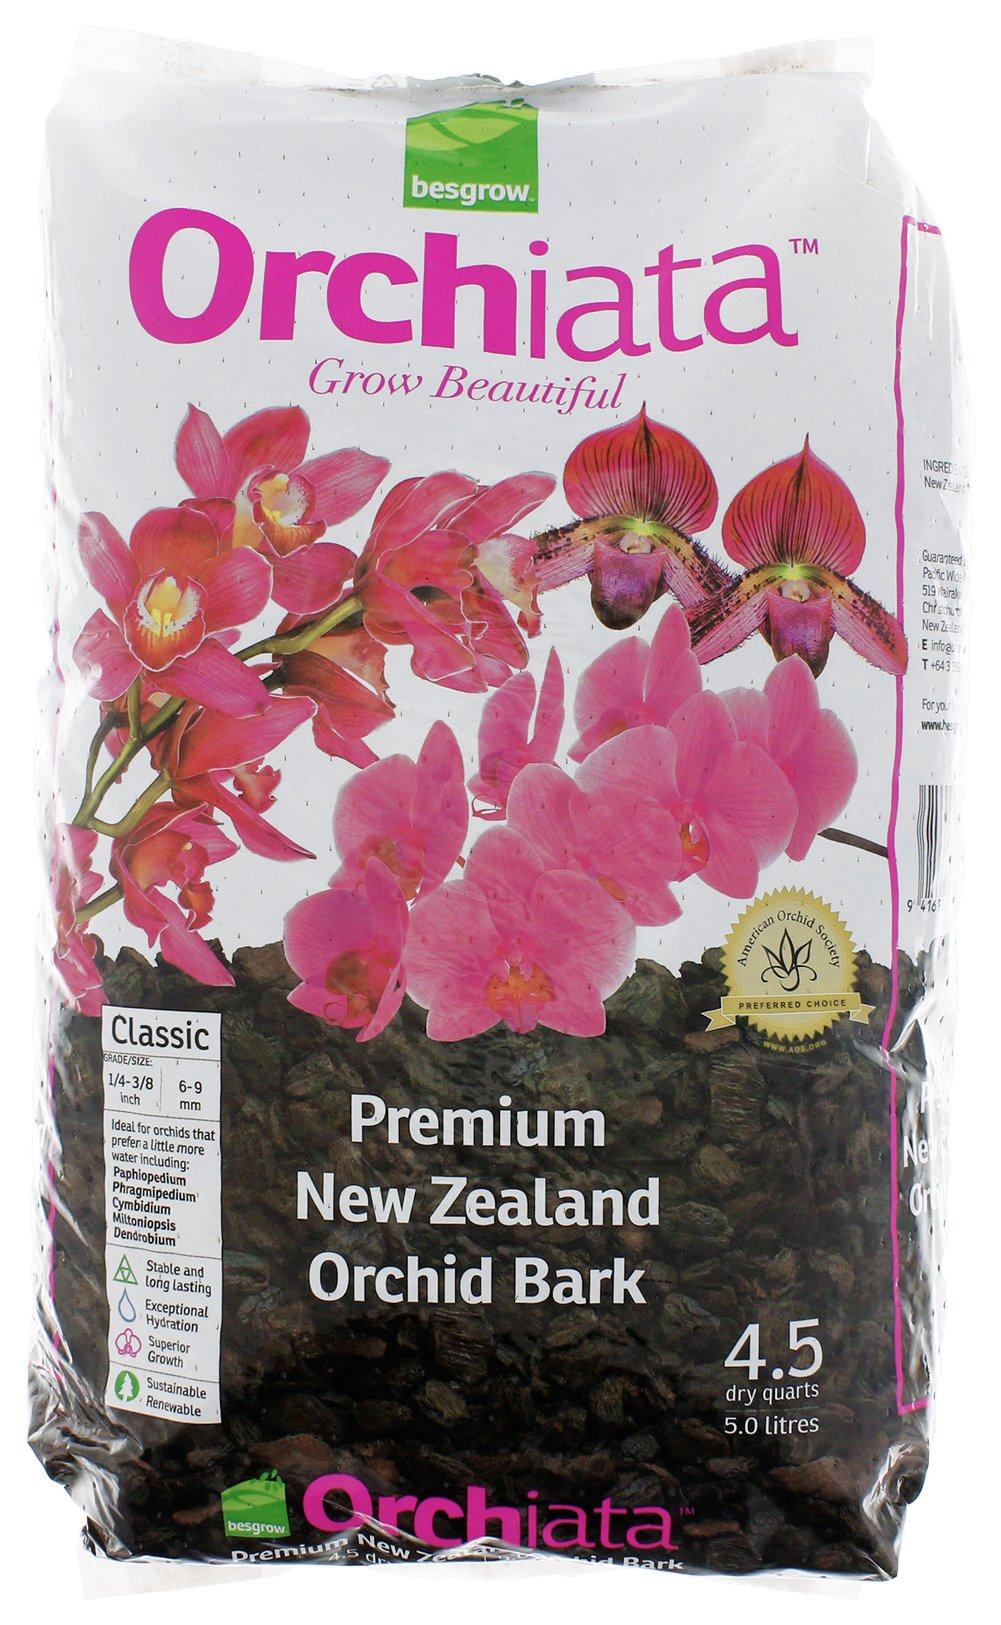 Besgrow Orchiata Orchid Bark - Classic 1/4''-3/8'' (6-9mm)